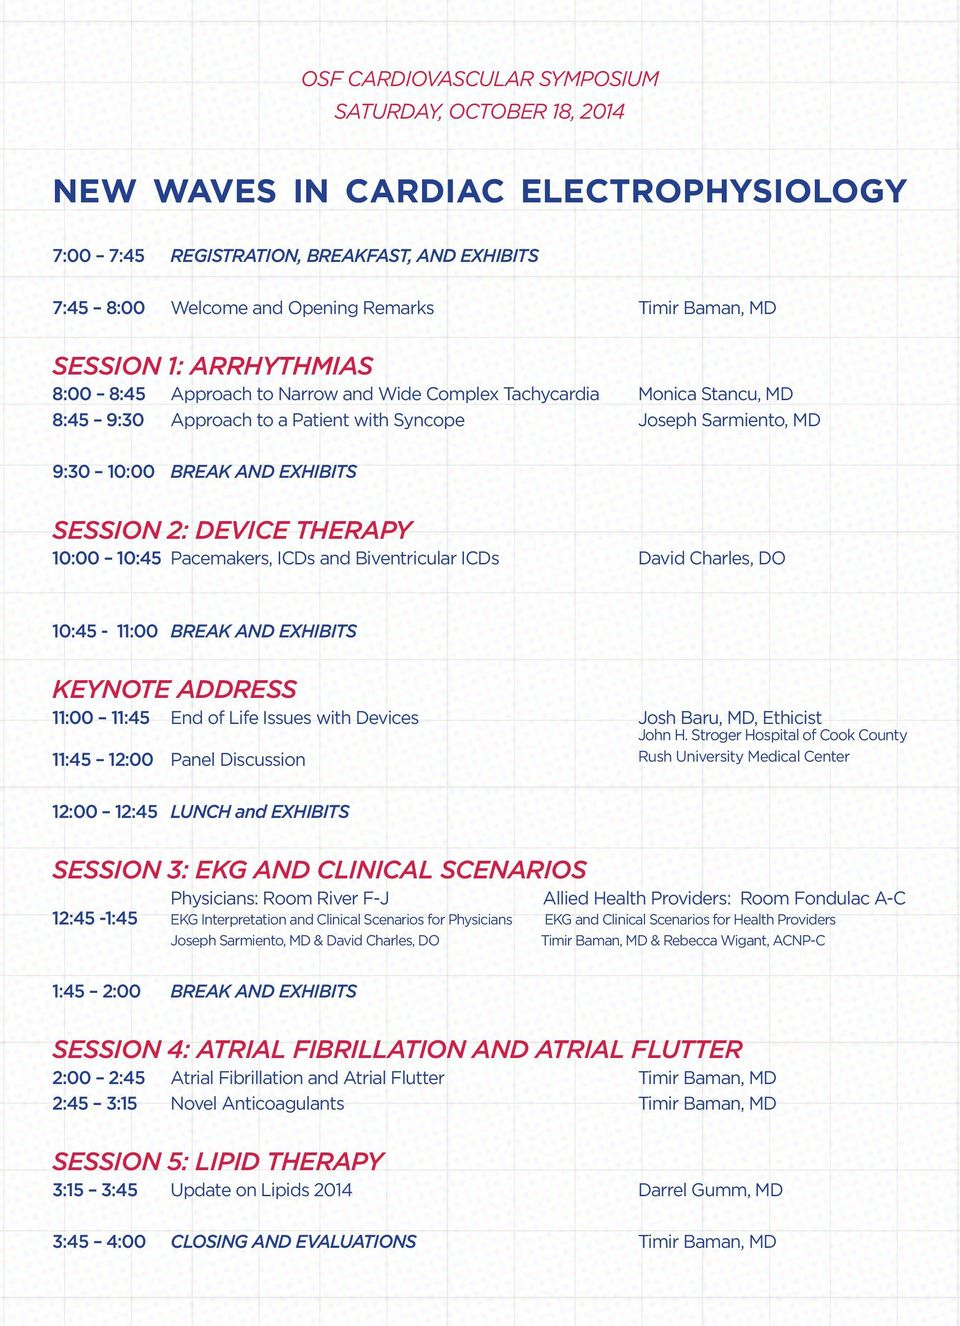 SESSION 2: DEVICE THERAPY 10:00 10:45 Pacemakers, ICDs and Biventricular ICDs David Charles, DO 10:45-11:00 BREAK AND EXHIBITS KEYNOTE ADDRESS 11:00 11:45 End of Life Issues with Devices Josh Baru,